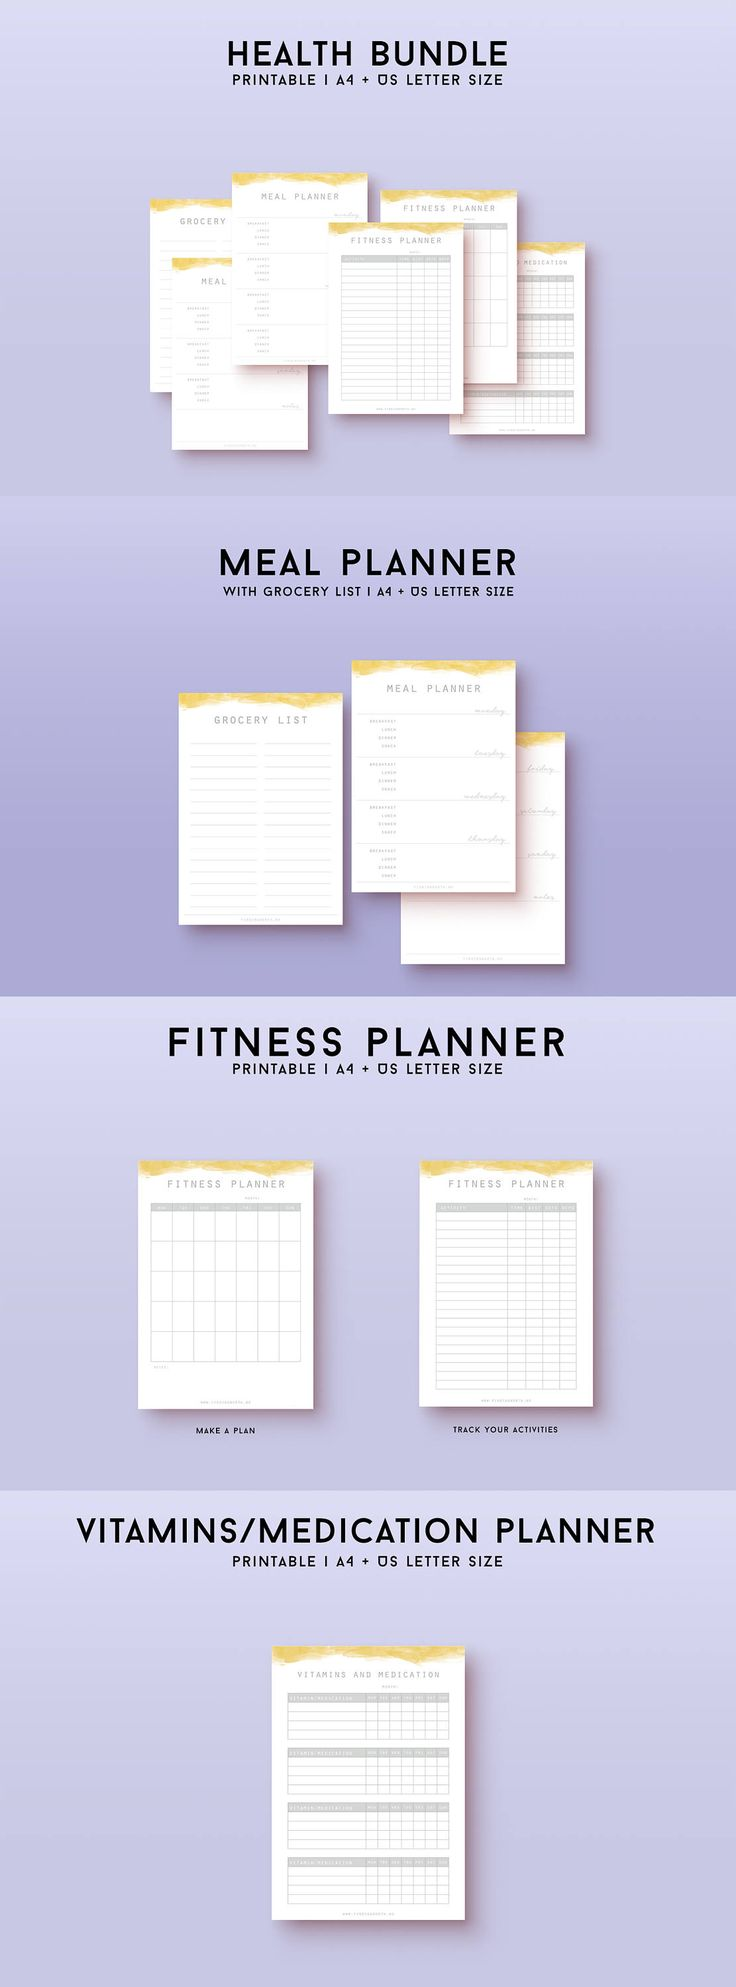 Get control of your health and fitness with this great printable bundle! This bundle includes a health tracker to track all health aspects of your life, as well as a meal planner with grocery list, a fitness tracker where you can plan and record your workouts and a vitamins/medicine planner. They all come in a minimalist design to leave space for your life, while giving you a nice framework.